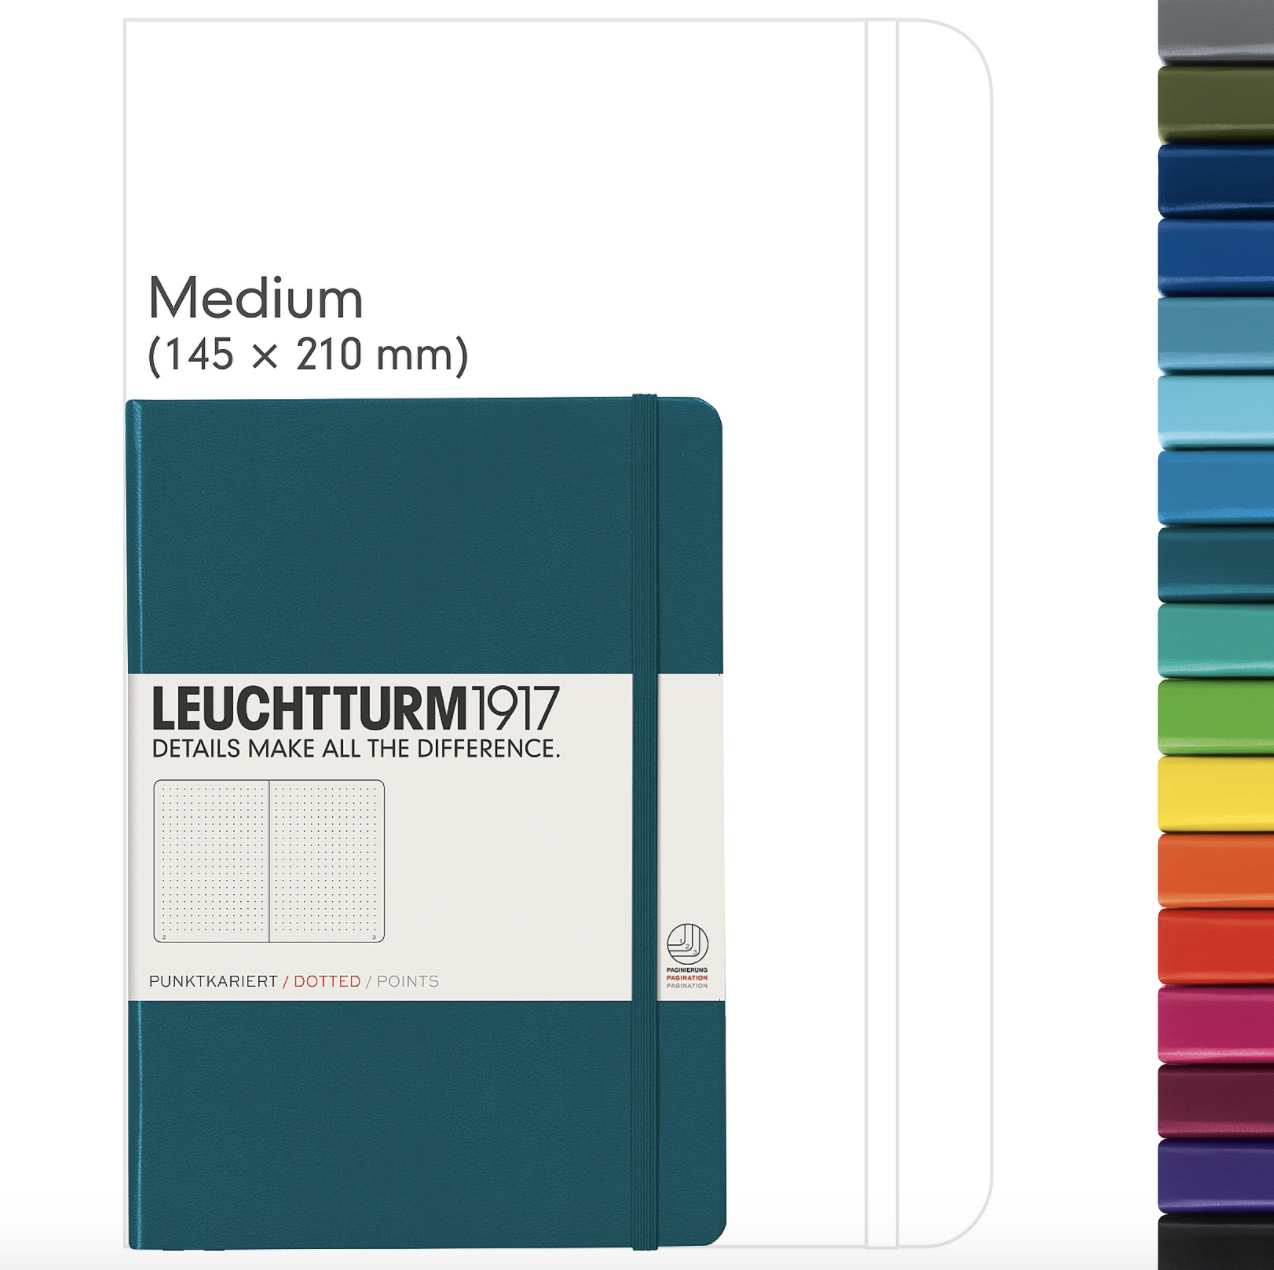 Leuchtturm 1917 A5 Medium Hardcover Notebook